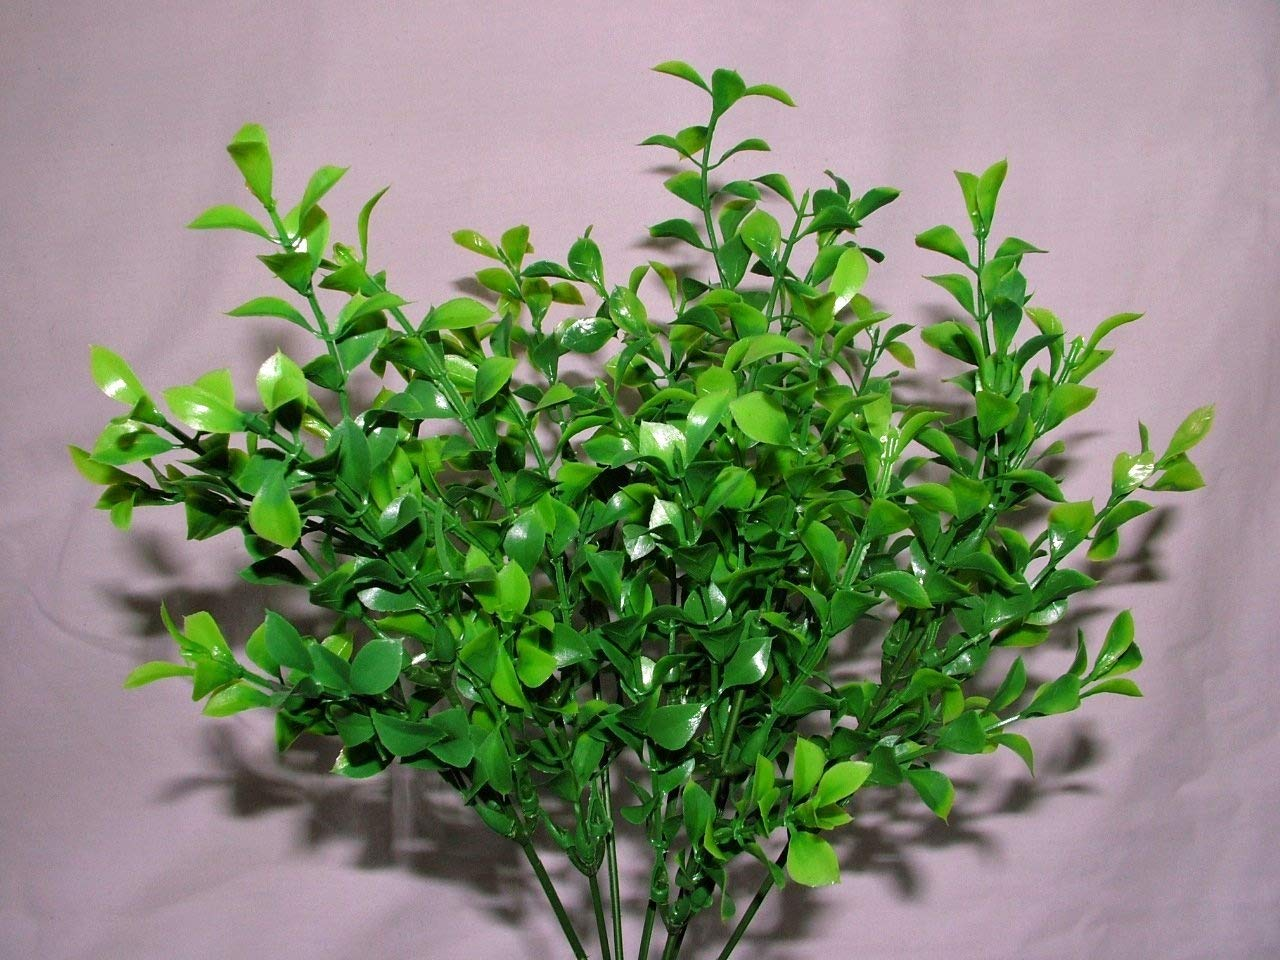 3 x Artificial Two-tone Waterproof Boxwood Topiary Bush - 7 stems each - Planters Hanging Baskets Garden Foliage Wedding